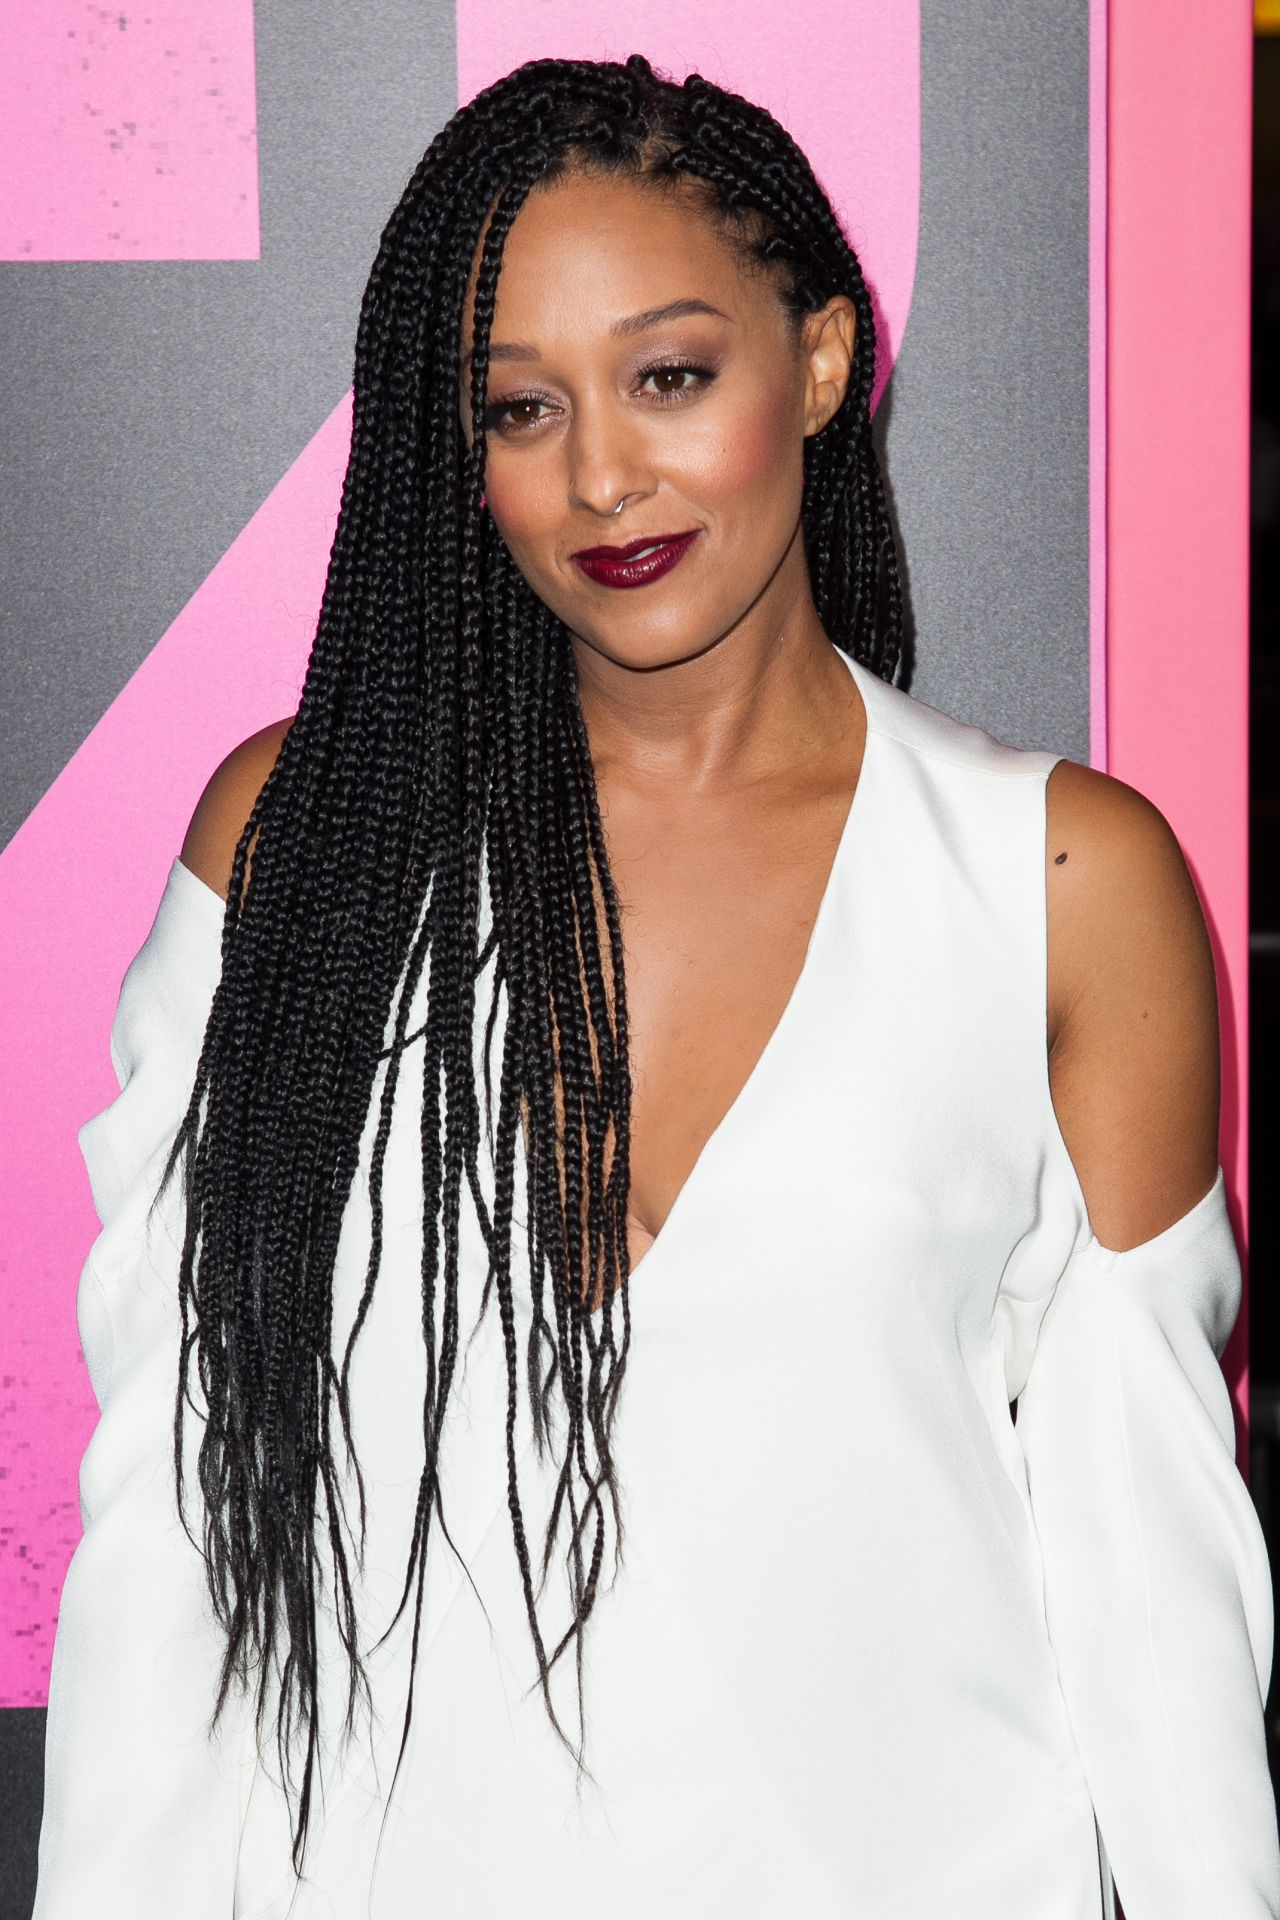 Tia Mowry - 'Horrible Bosses 2' Premiere at TCL Chinese Theatre in Hollywood